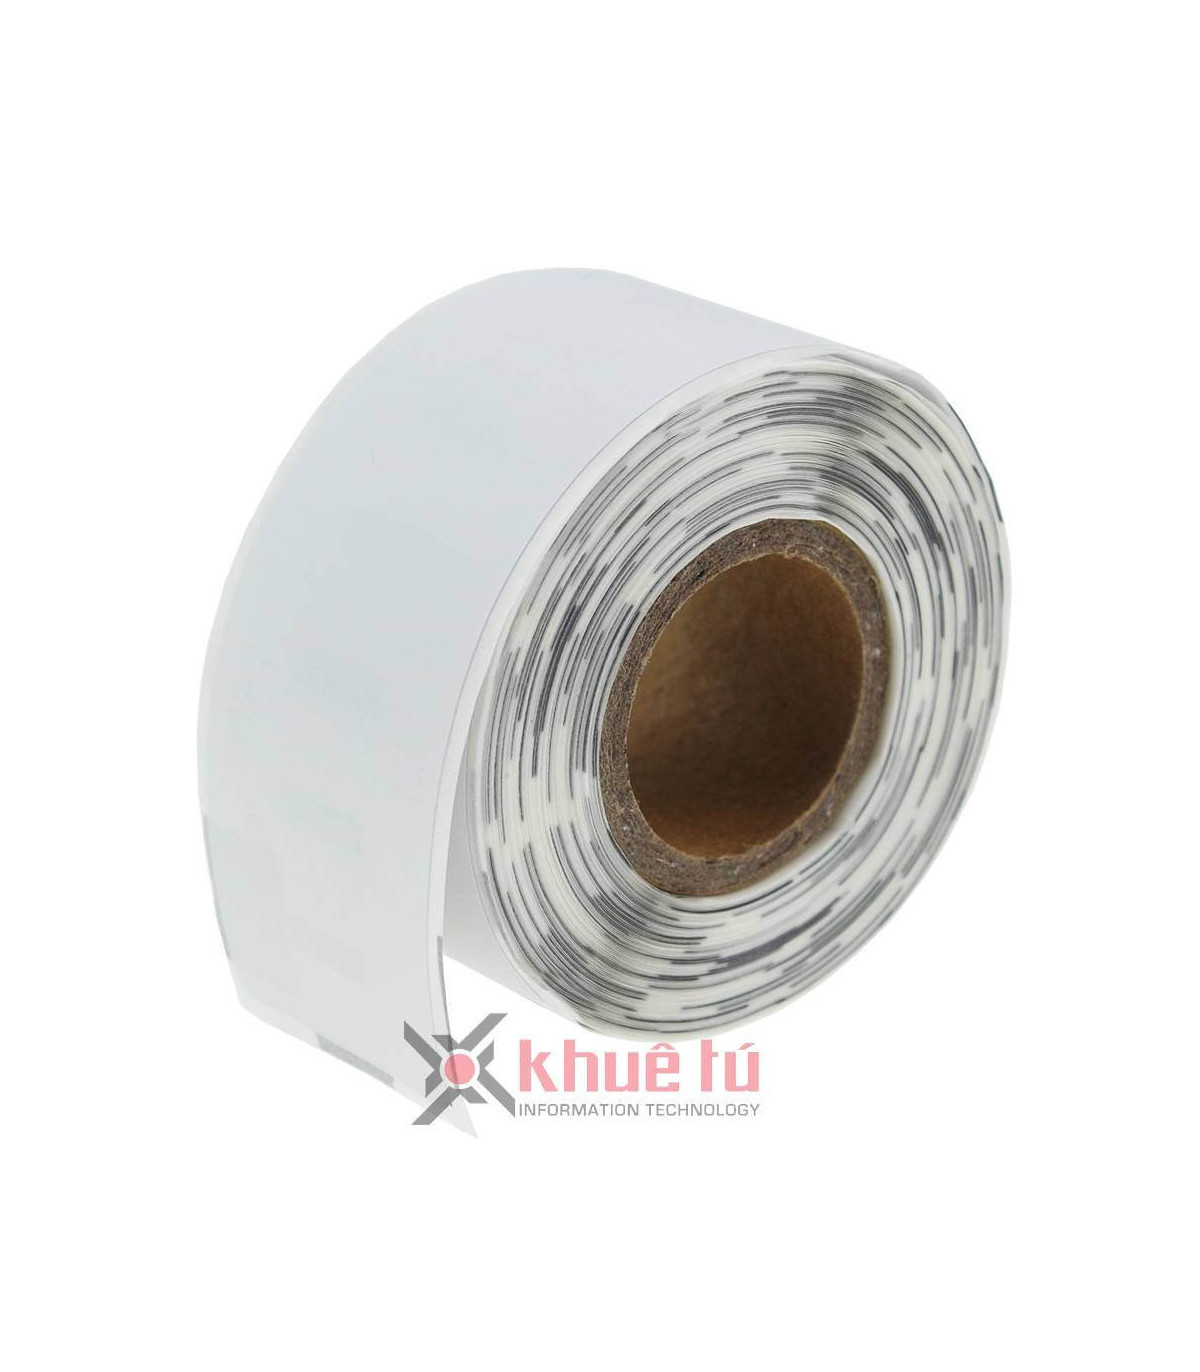 DM-A99010, Black on White, 89mm x 28mm x 130 lables | ⓿❽❻❽❺⓿❺⓿❺❺ | Nhãn in, tem in, giấy in, băng nhãn, tape in | khuetu.vn